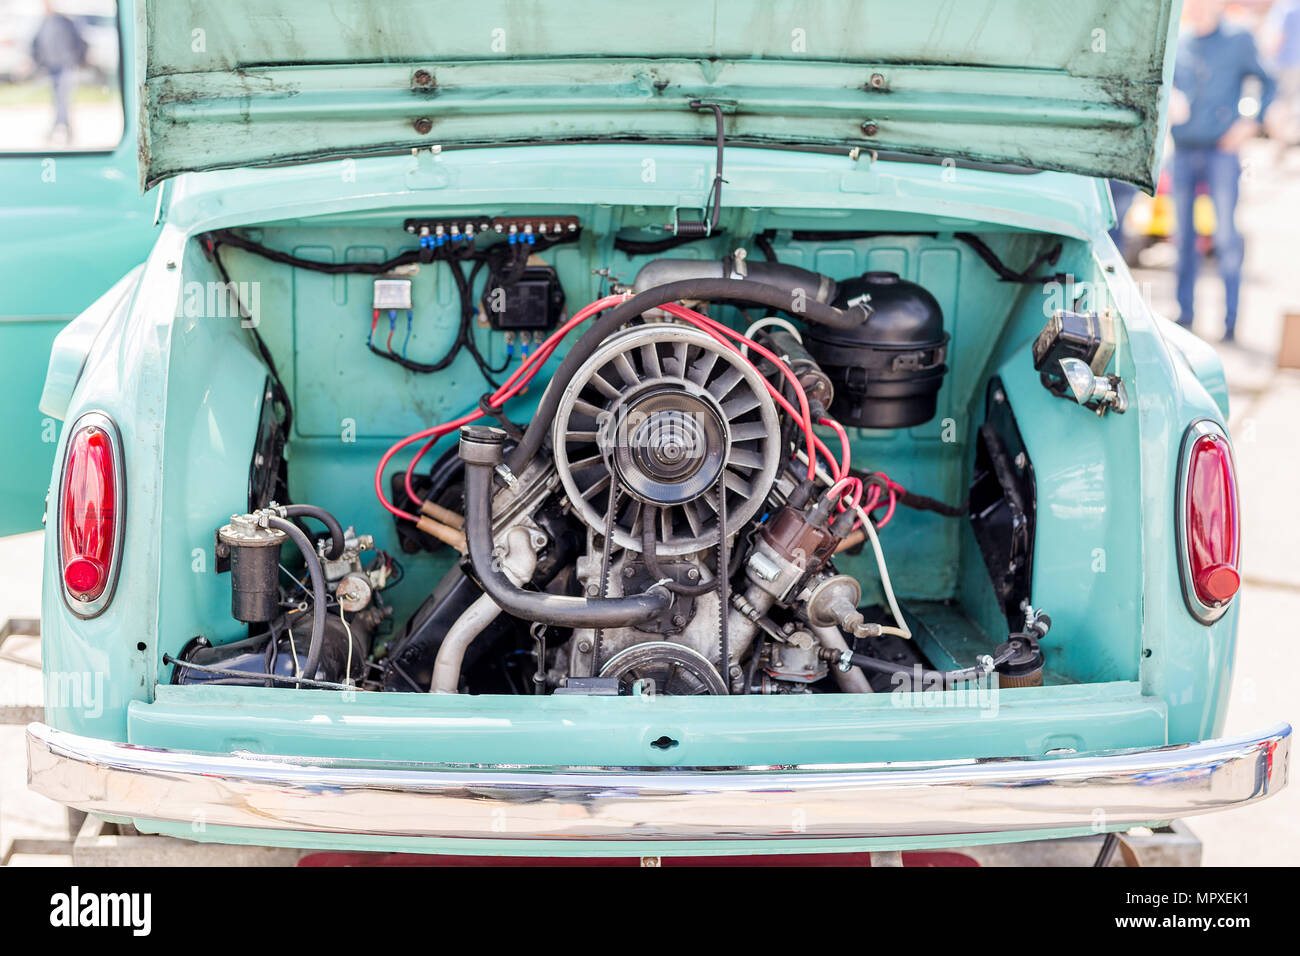 Back view of vintage retro car with open trunk. Rear-engined old vehicle. Stock Photo